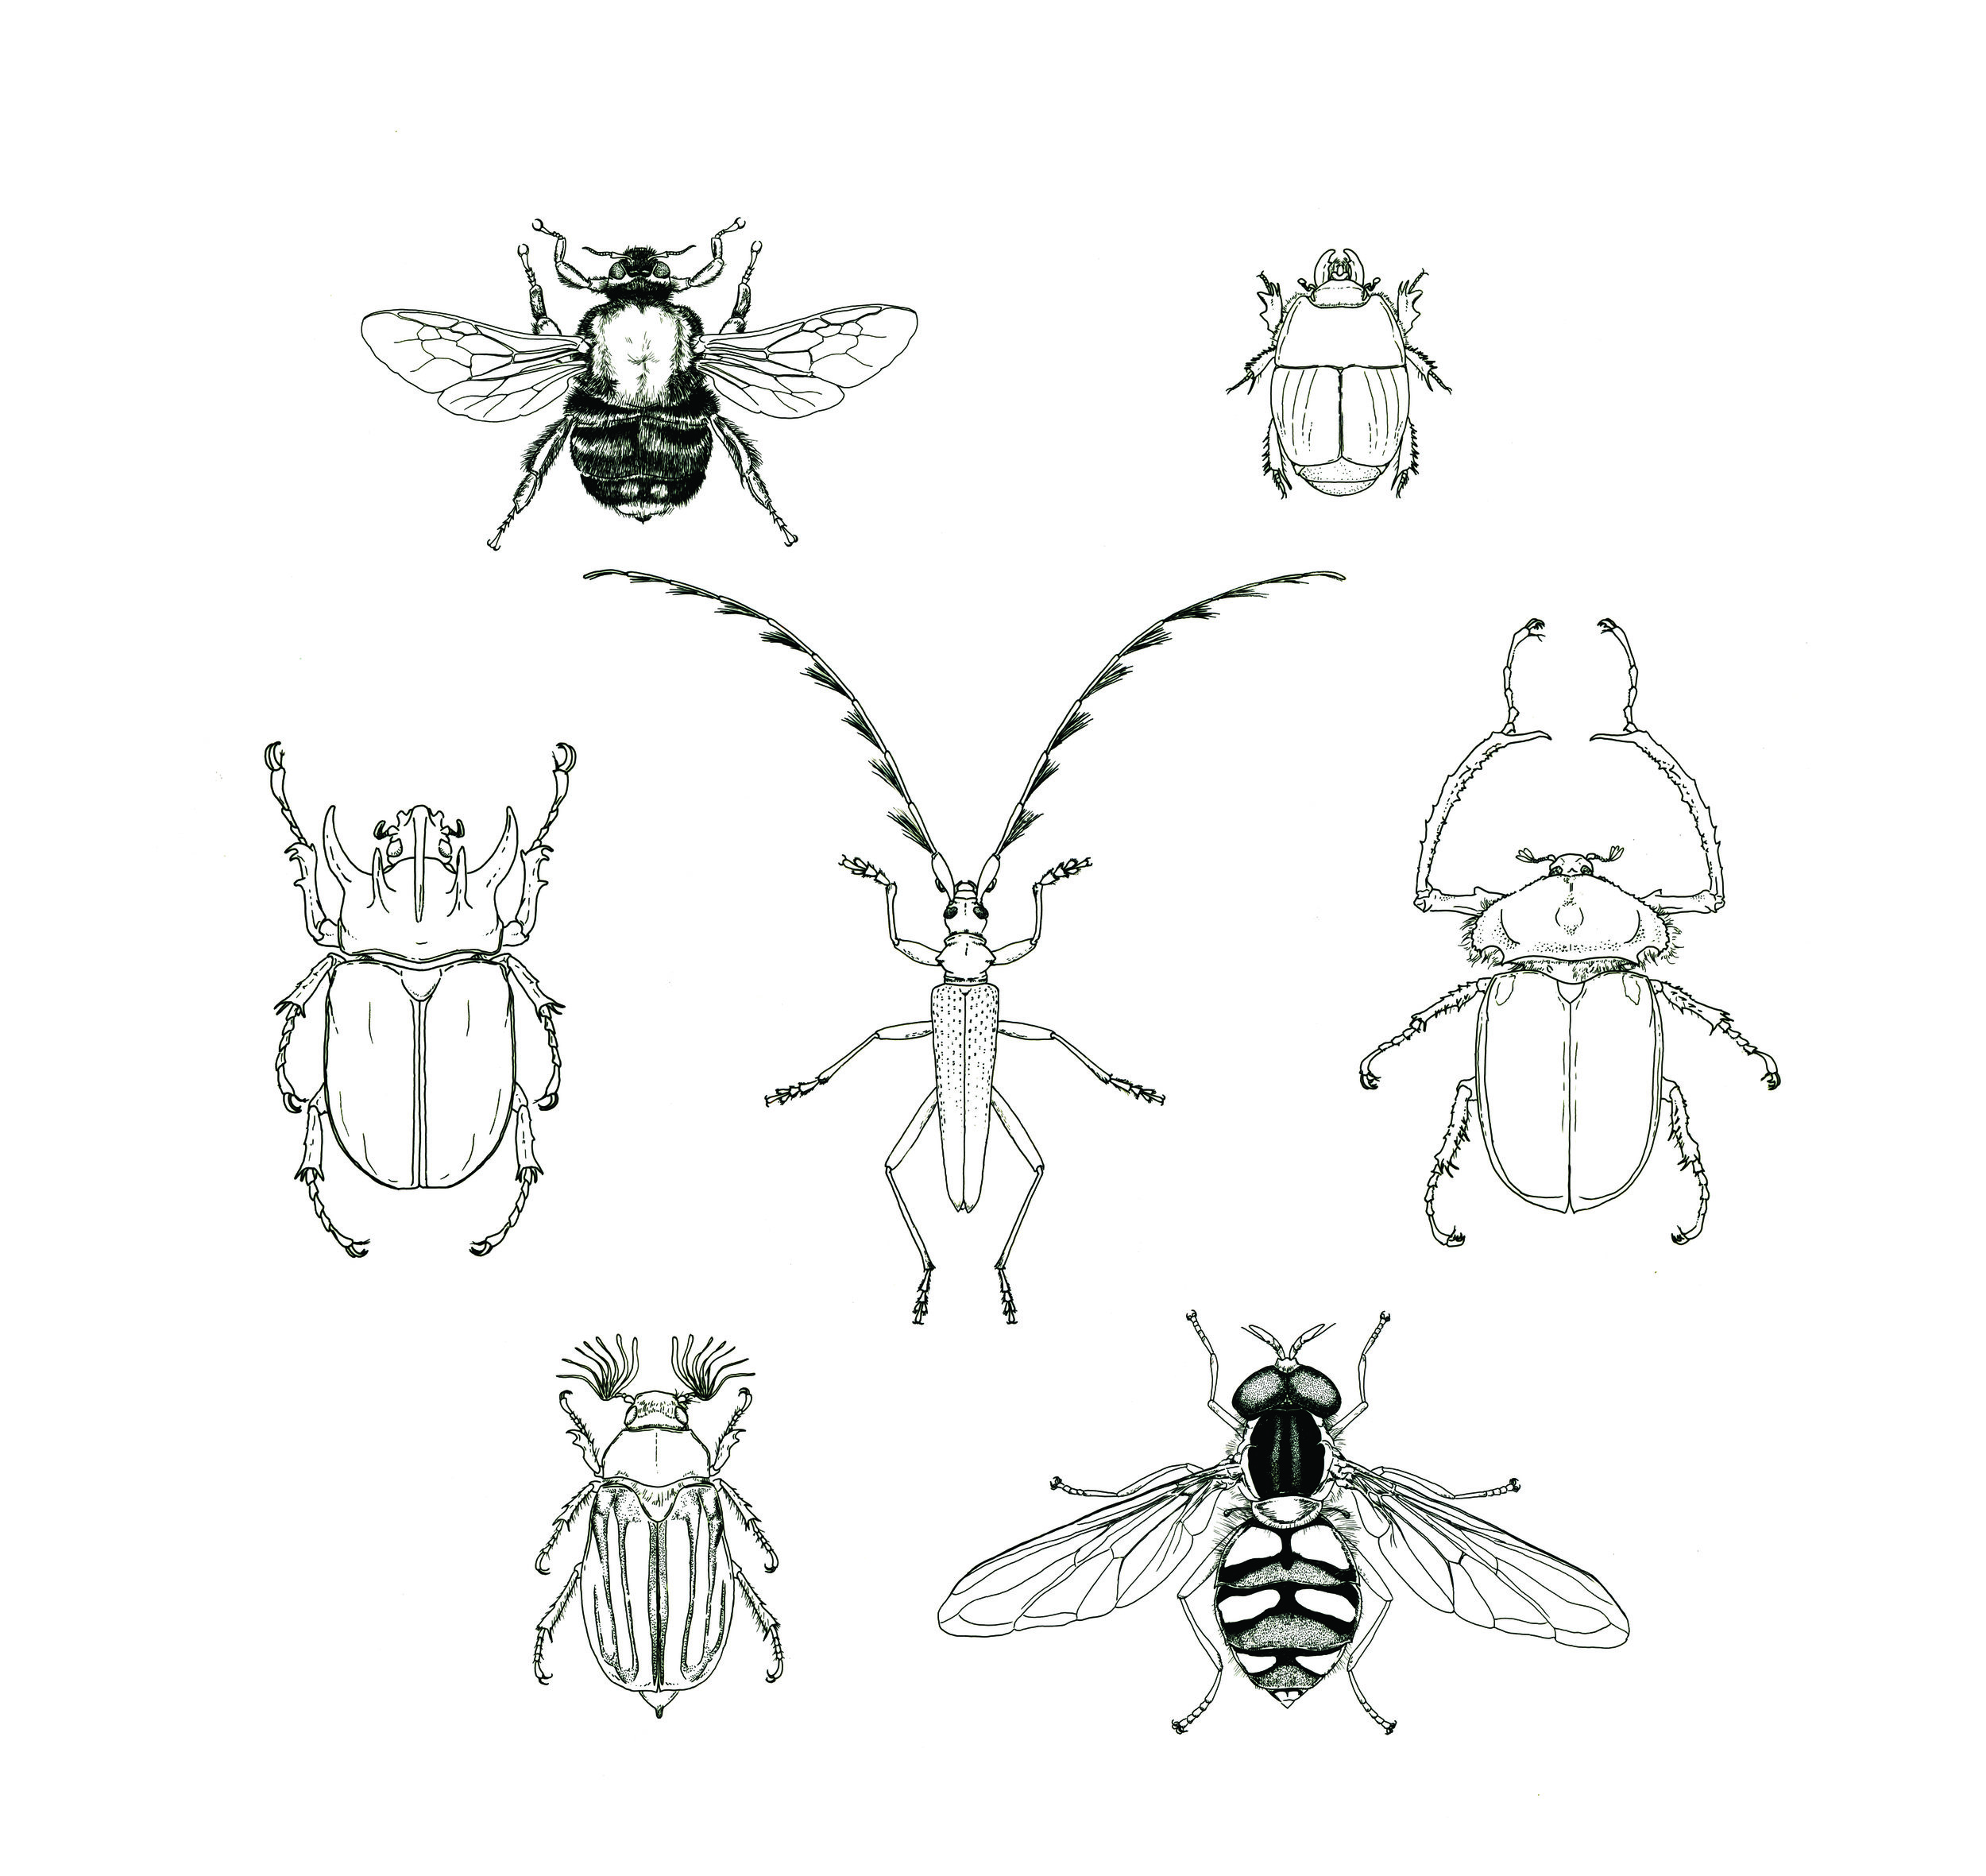 Pen and Ink Spot Illustrations